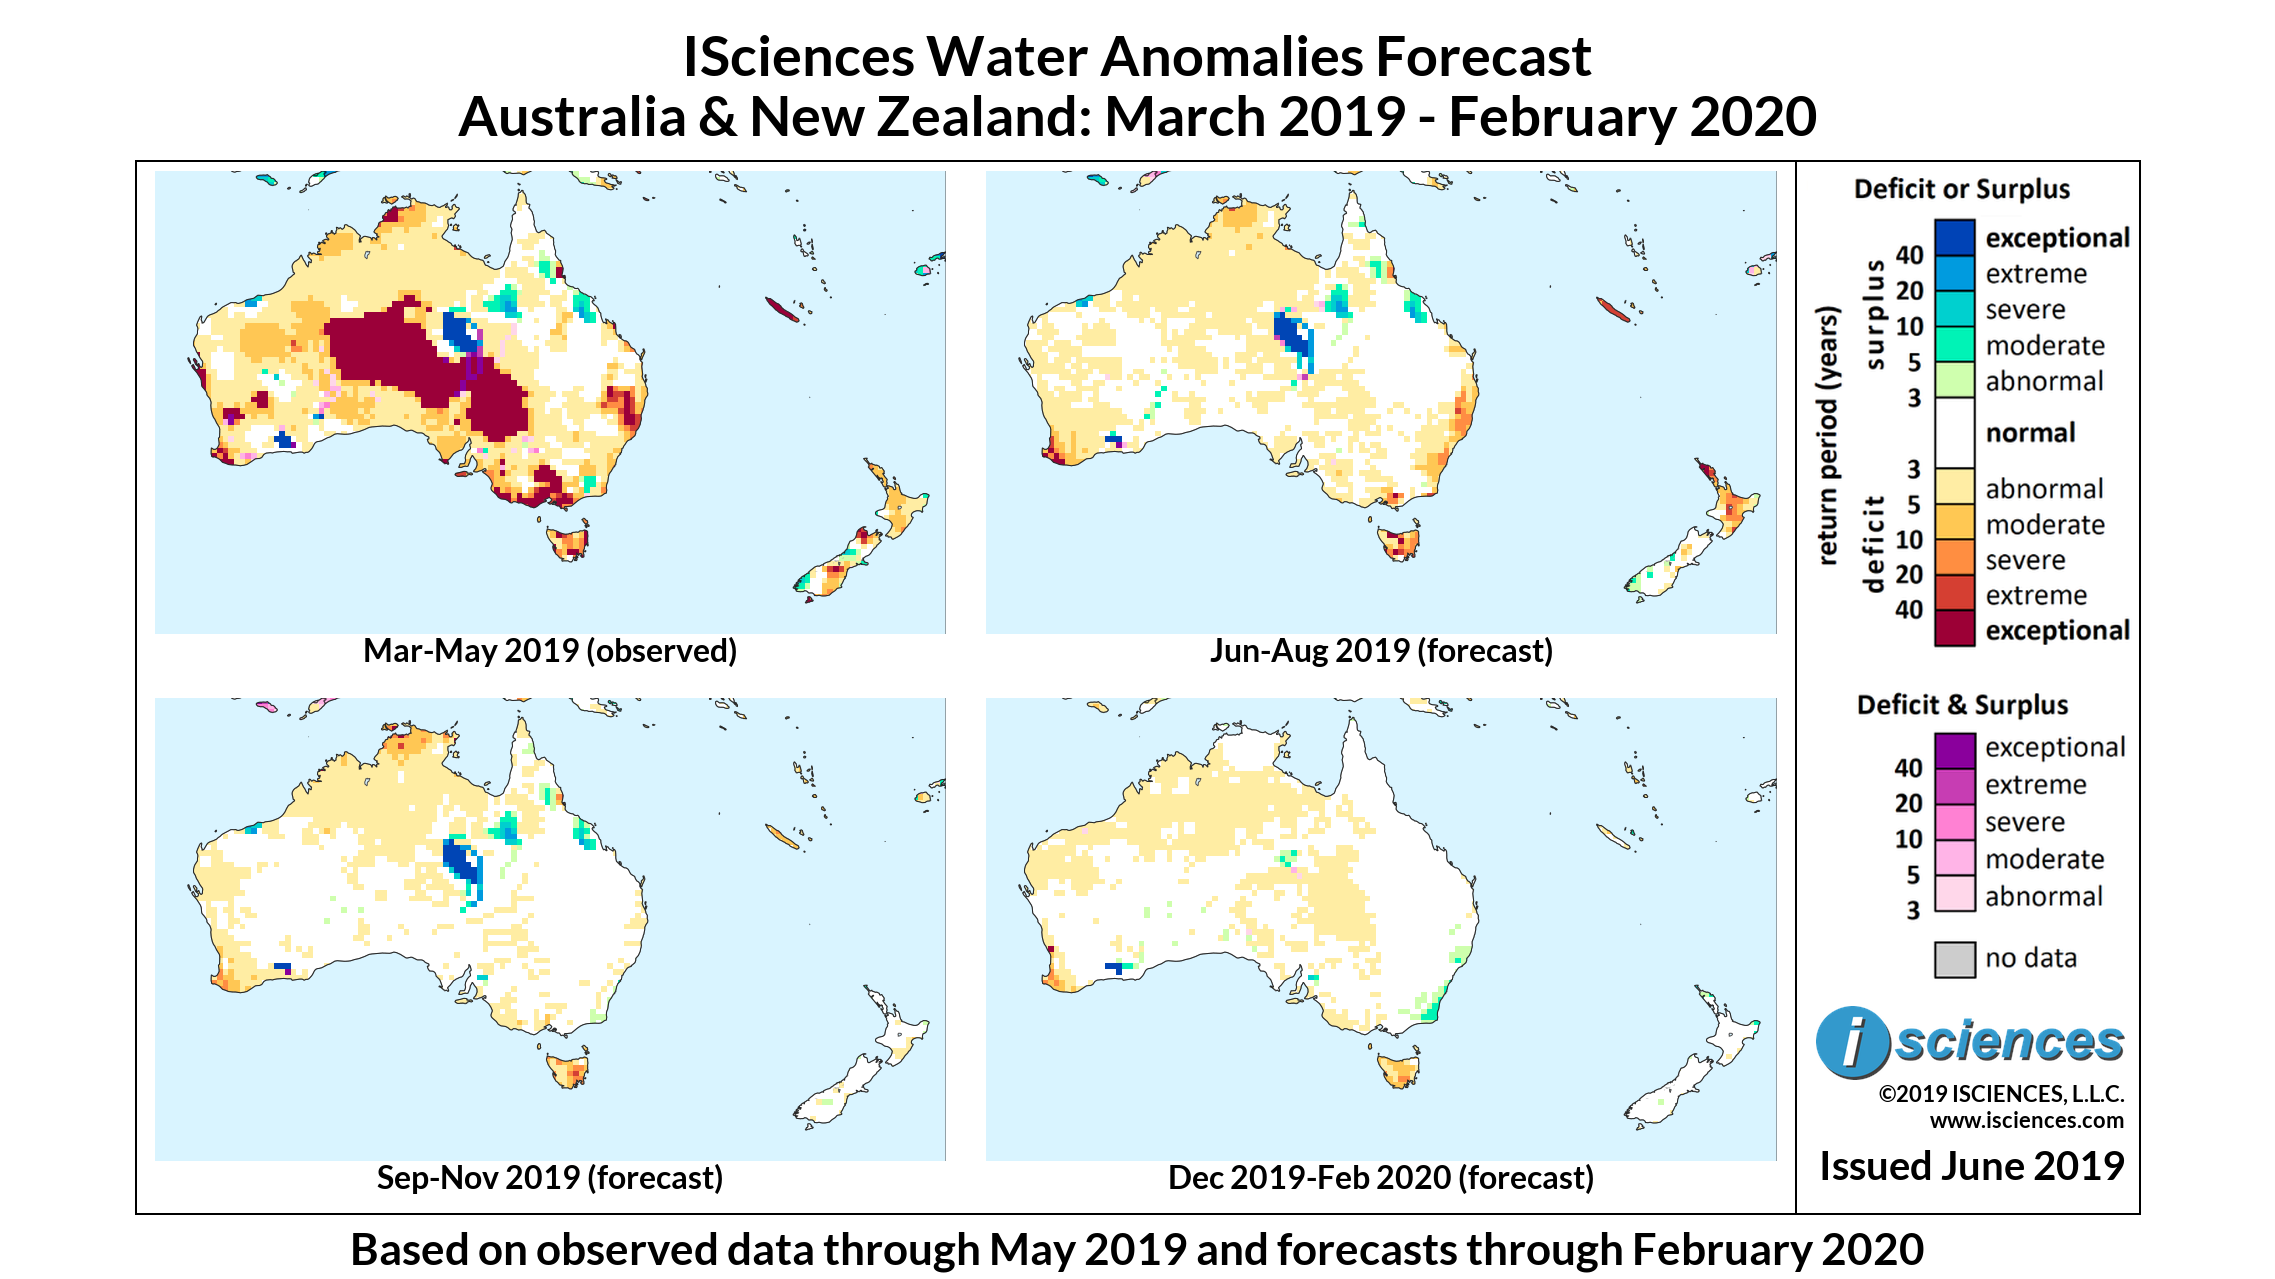 ISciences_R201905_Australia_New_Zealand_Composite_Adjusted_201903-202002_3mo_panel.png